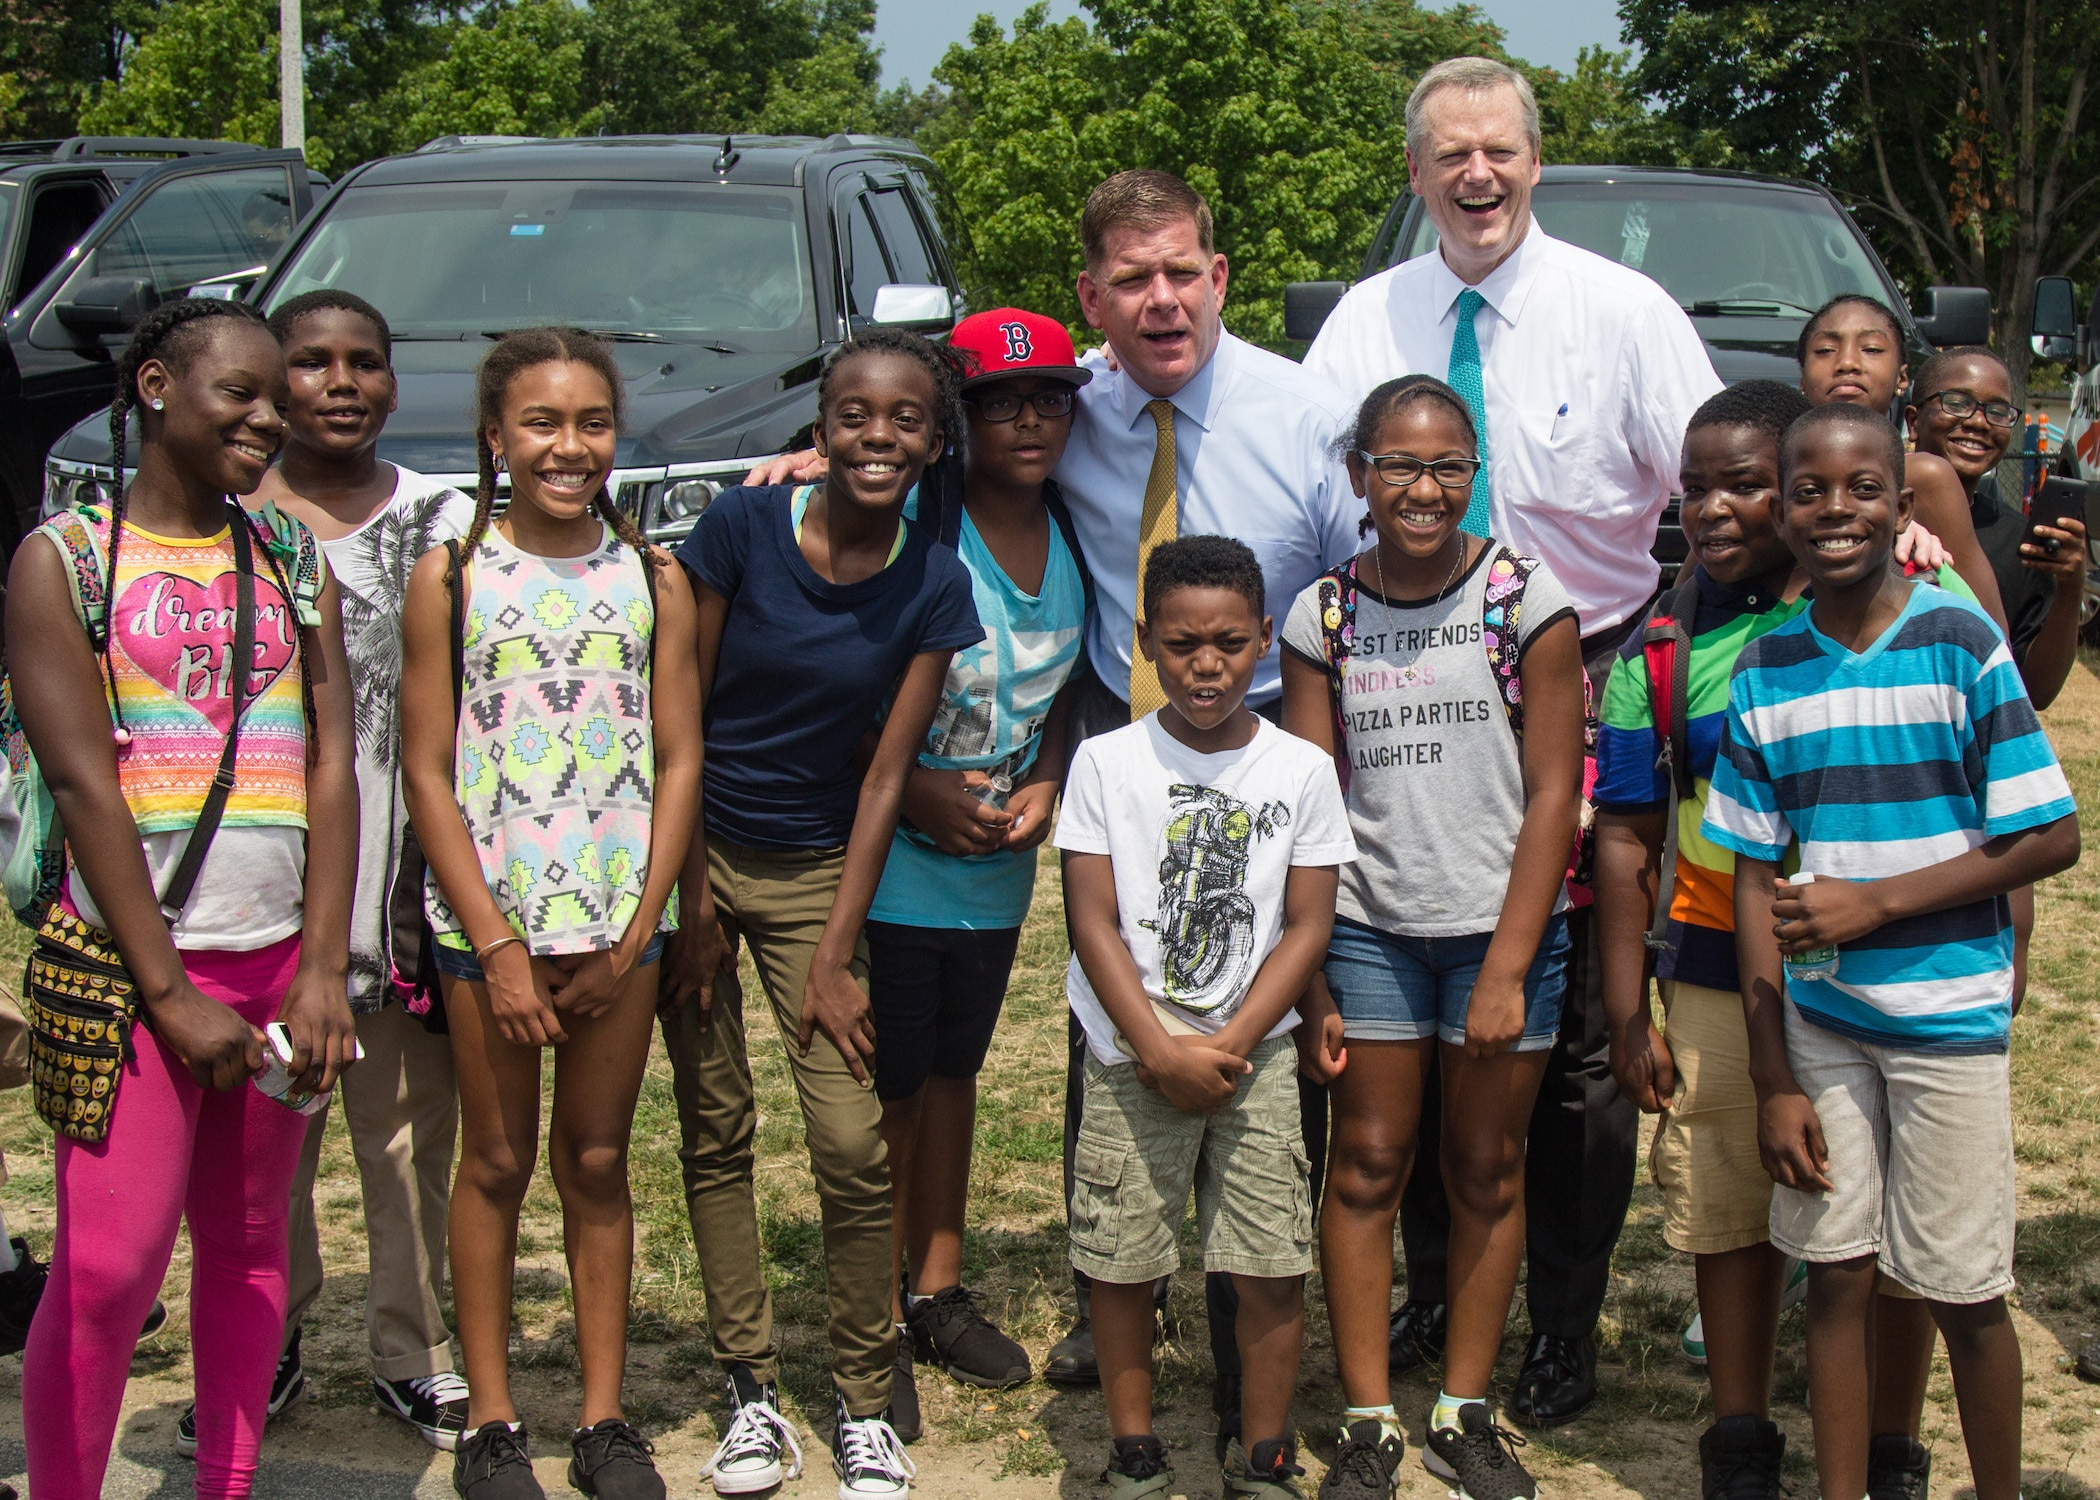 Governor Baker and Mayor Walsh with local children at the Summer Nights kickoff.